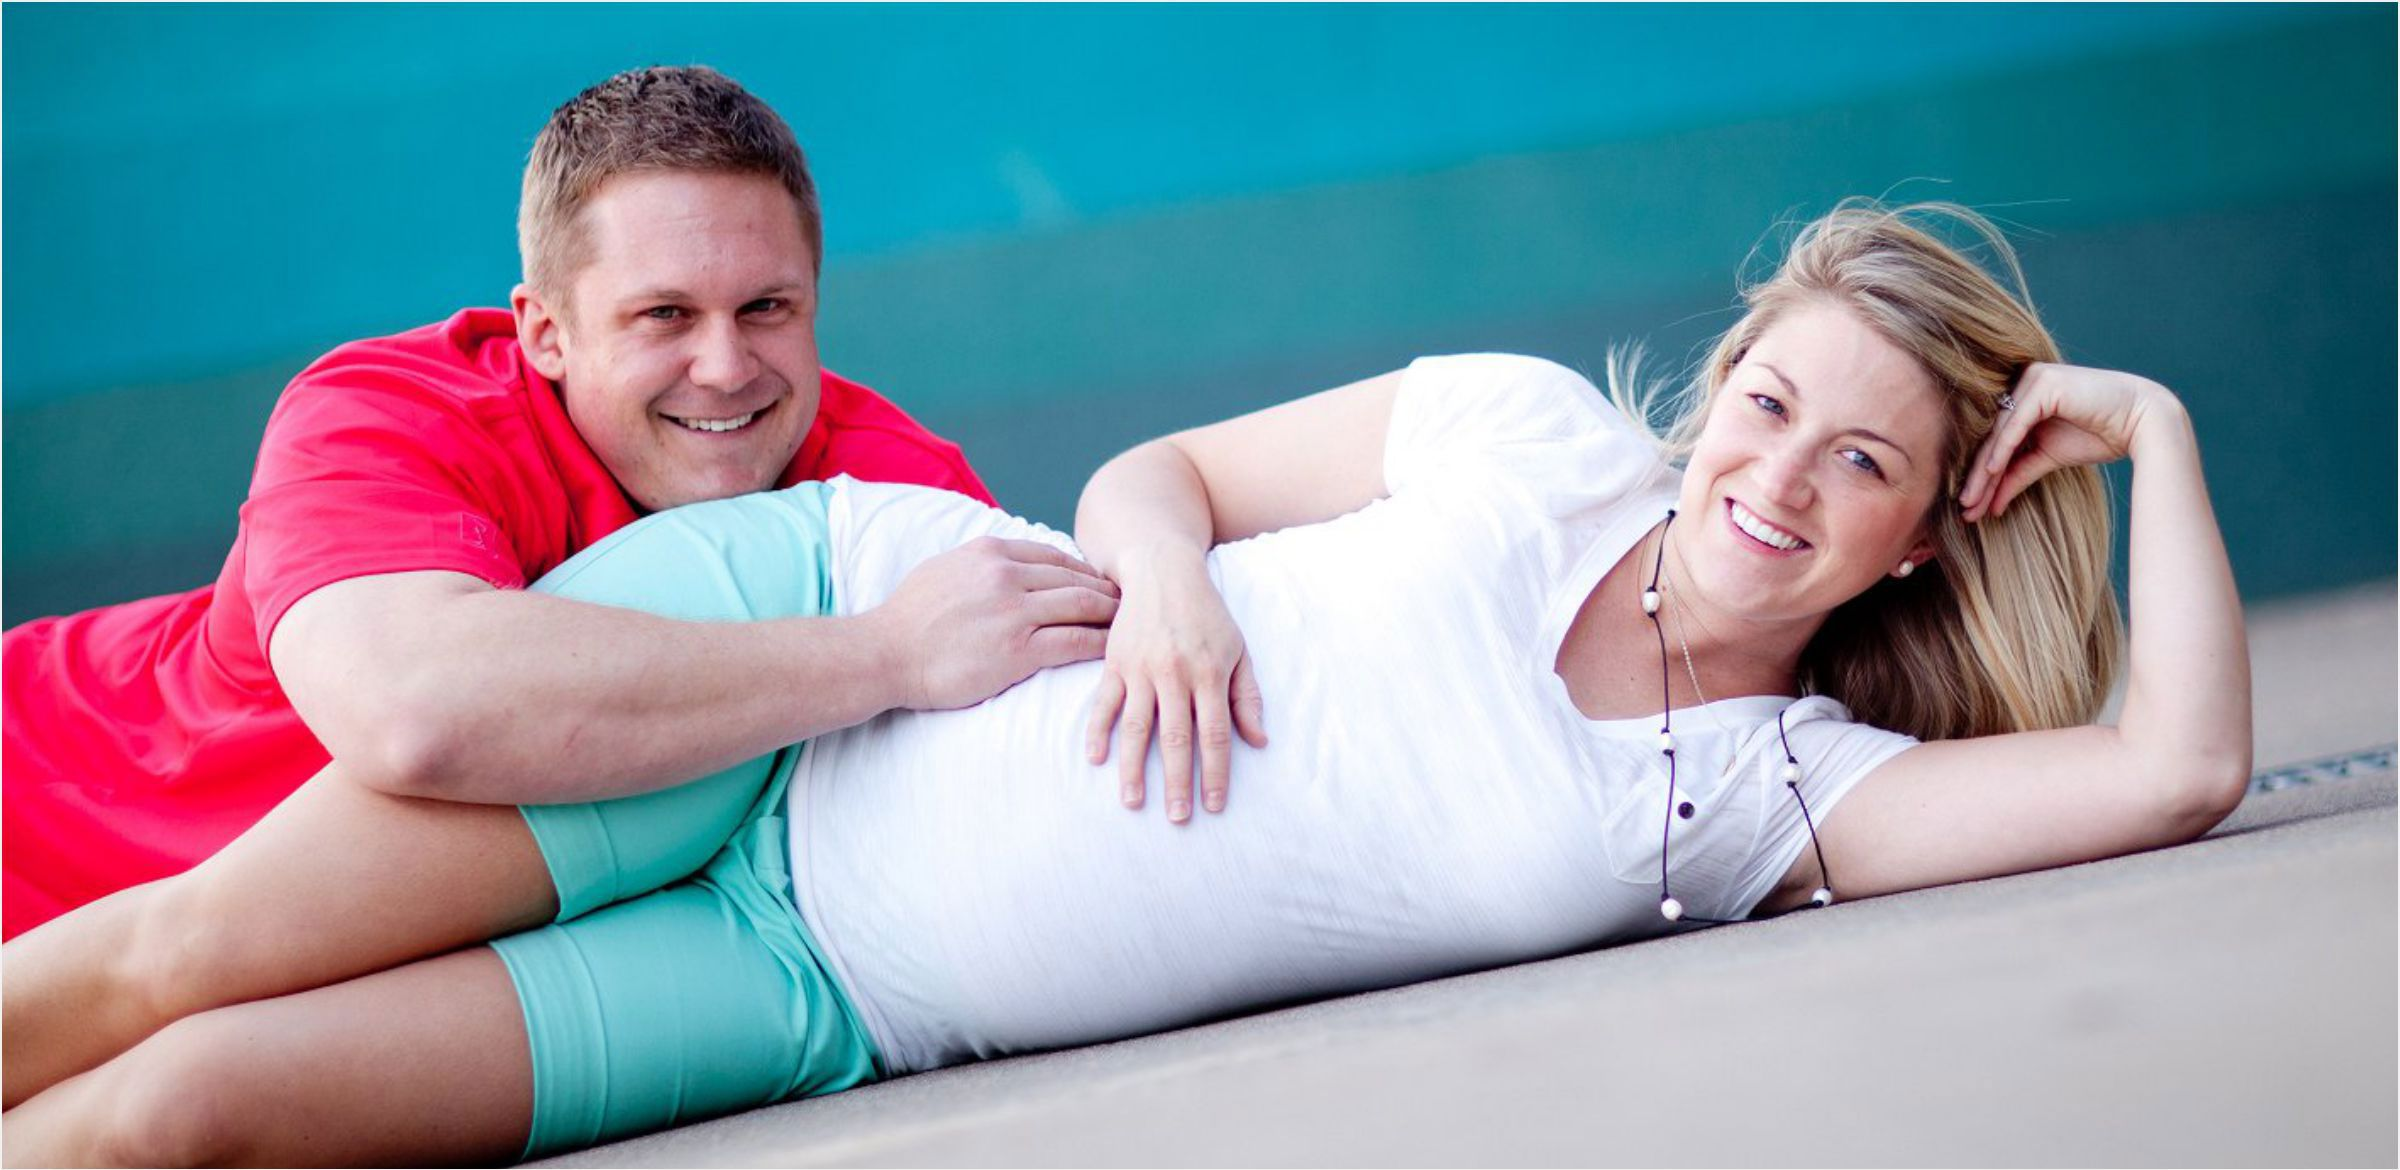 colorful-background-maternity-session-in-denver-colorado-001